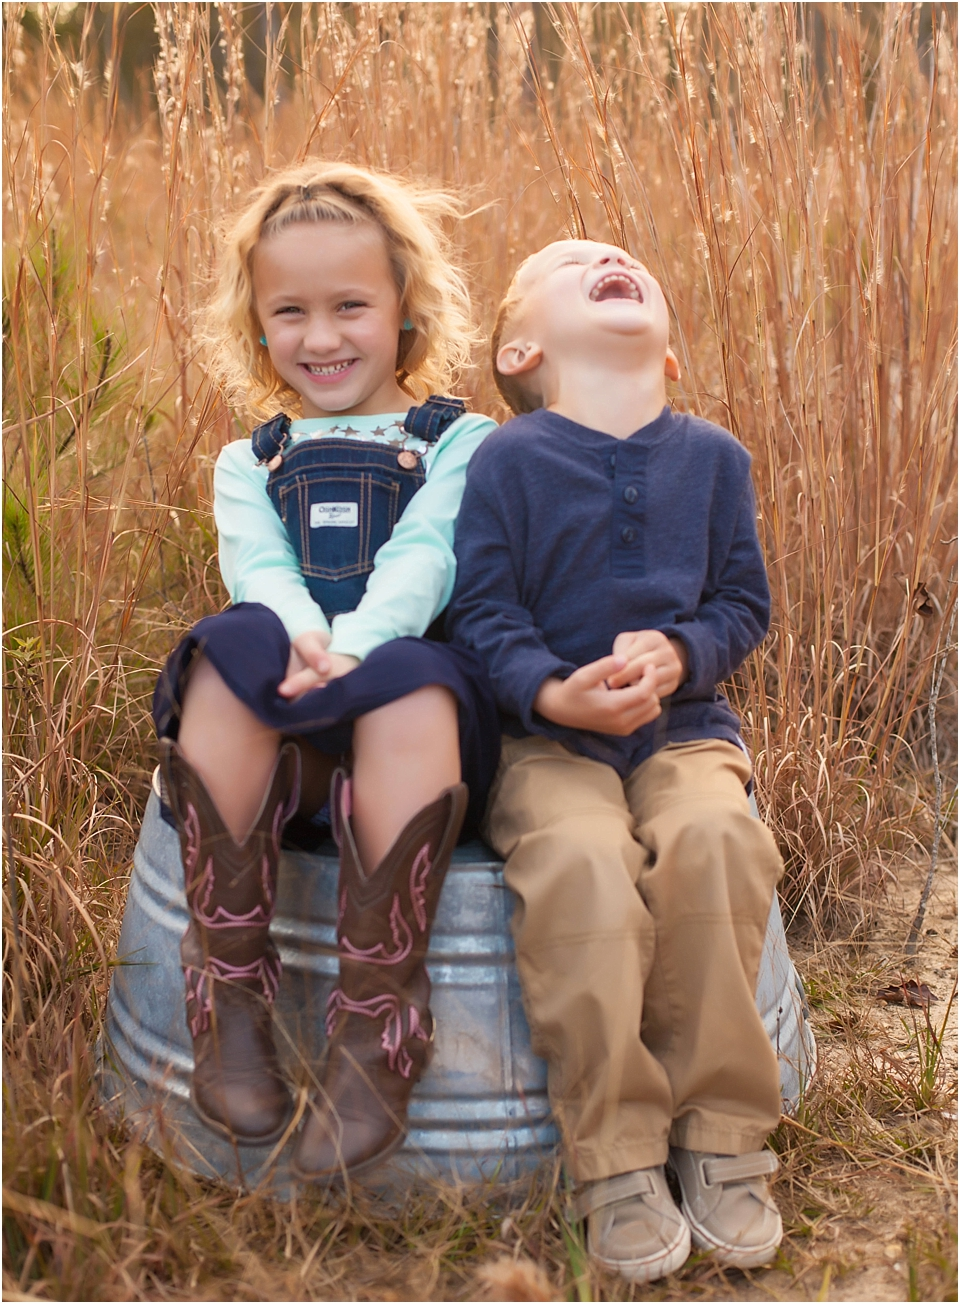 5 TIPS FOR CAPTURING CANDID MOMENTS DURING FAMILY SESSIONS